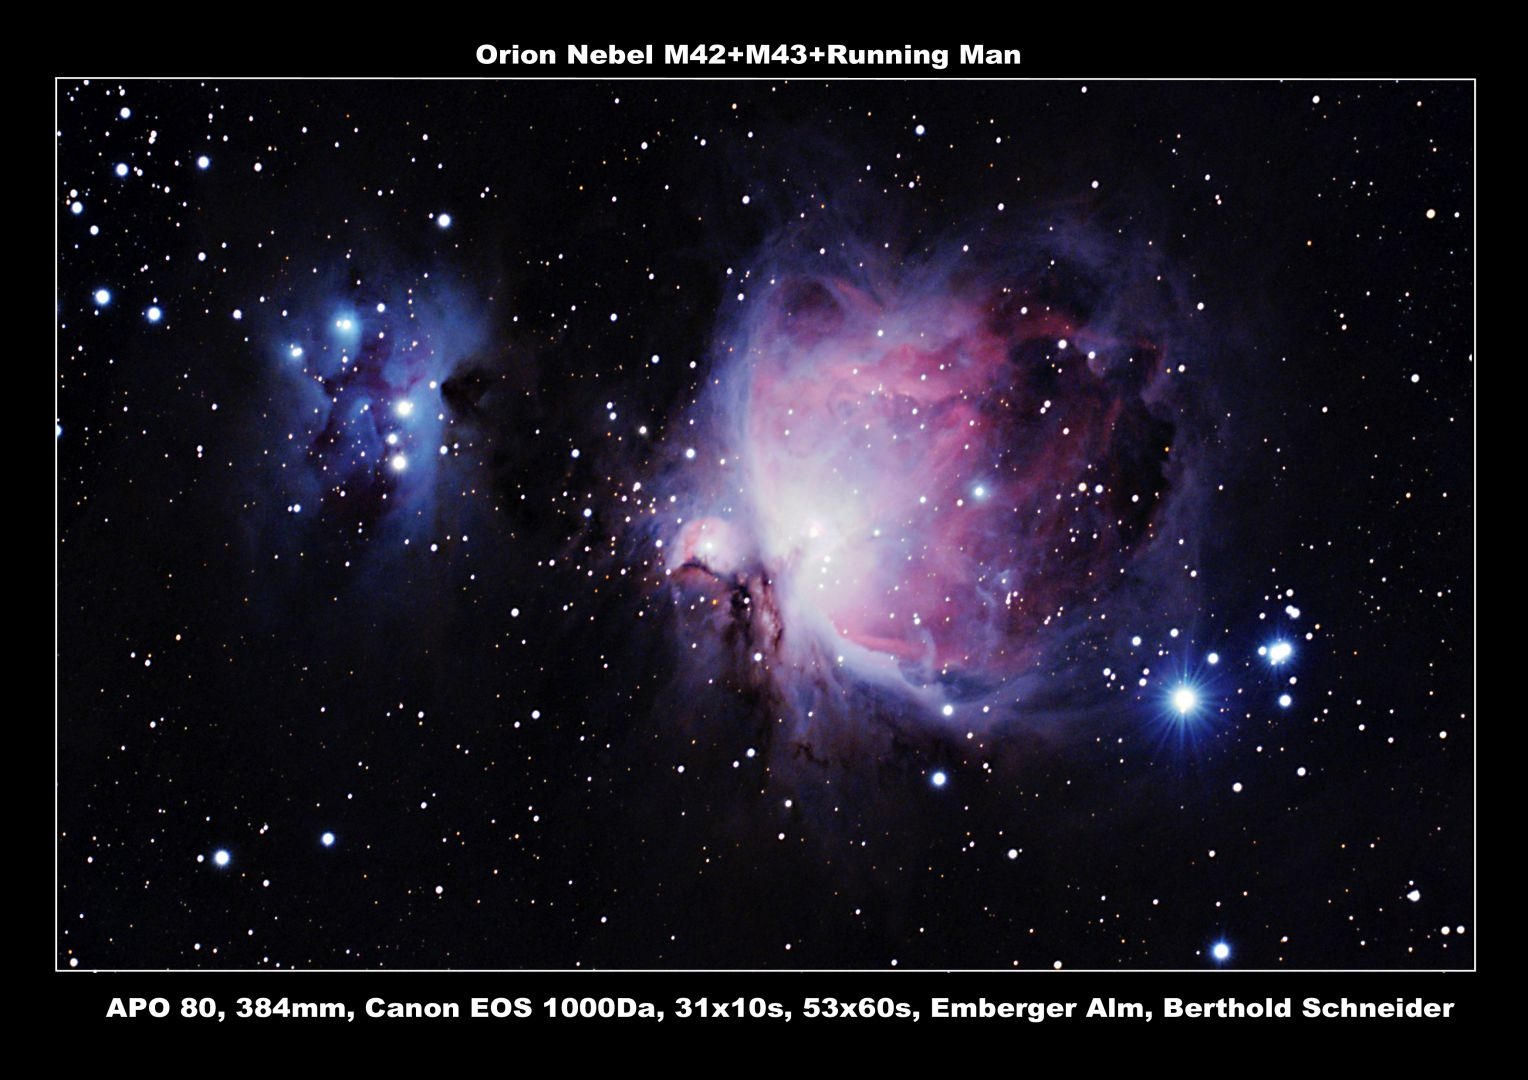 Orion Nebel